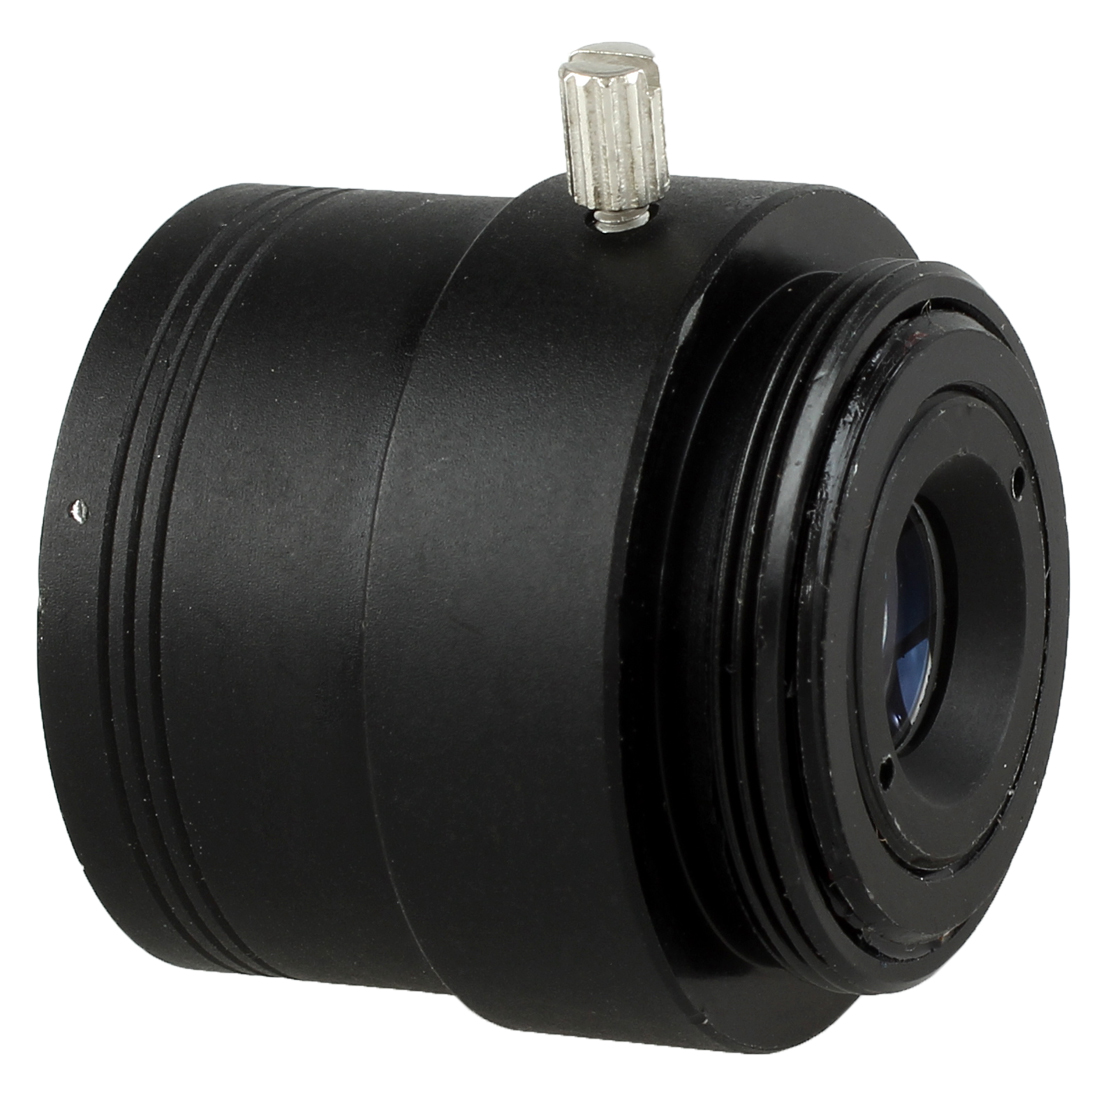 MOOL Replacement F1.2 16mm CCTV Camera Monofocal Iris Lens cs 8mm cctv camera lens fixed iris monofocal alloy with nail